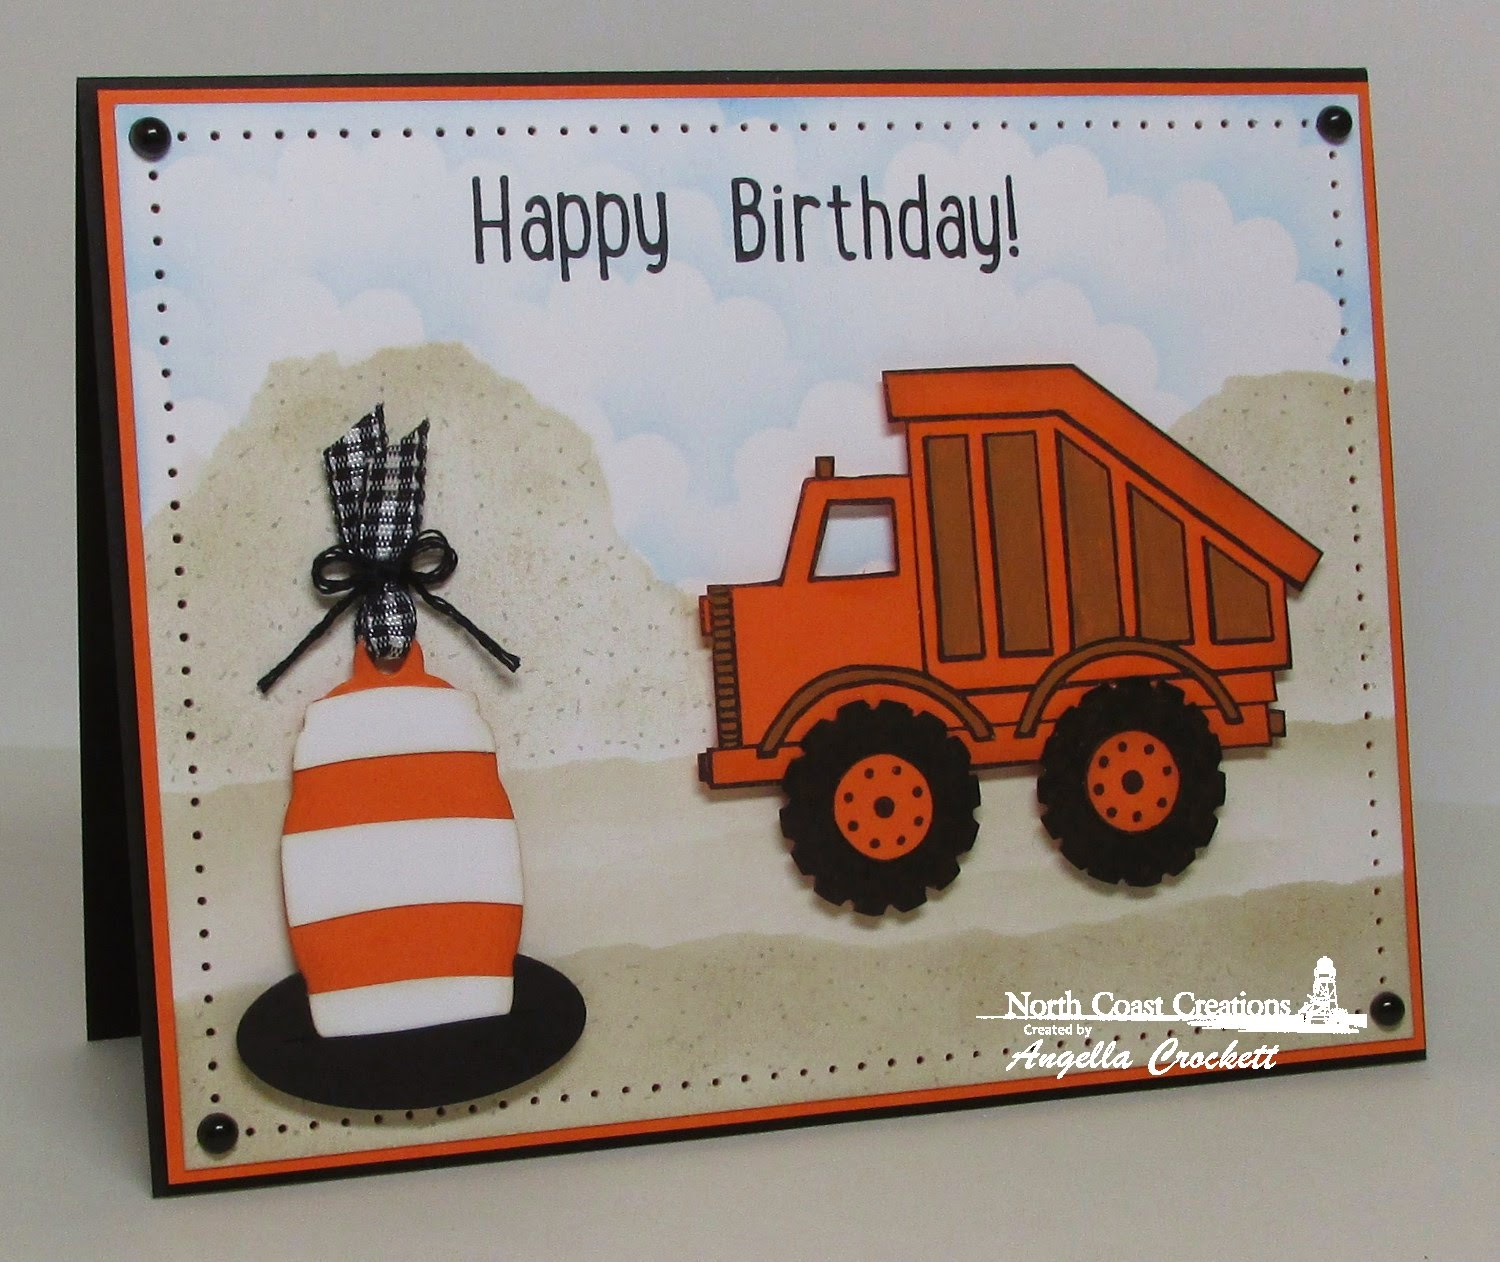 North Coast Creations Dump Truck Birthday, Our Daily Bread designs Custom Mini Tags Dies, Card Designer Angie Crockett